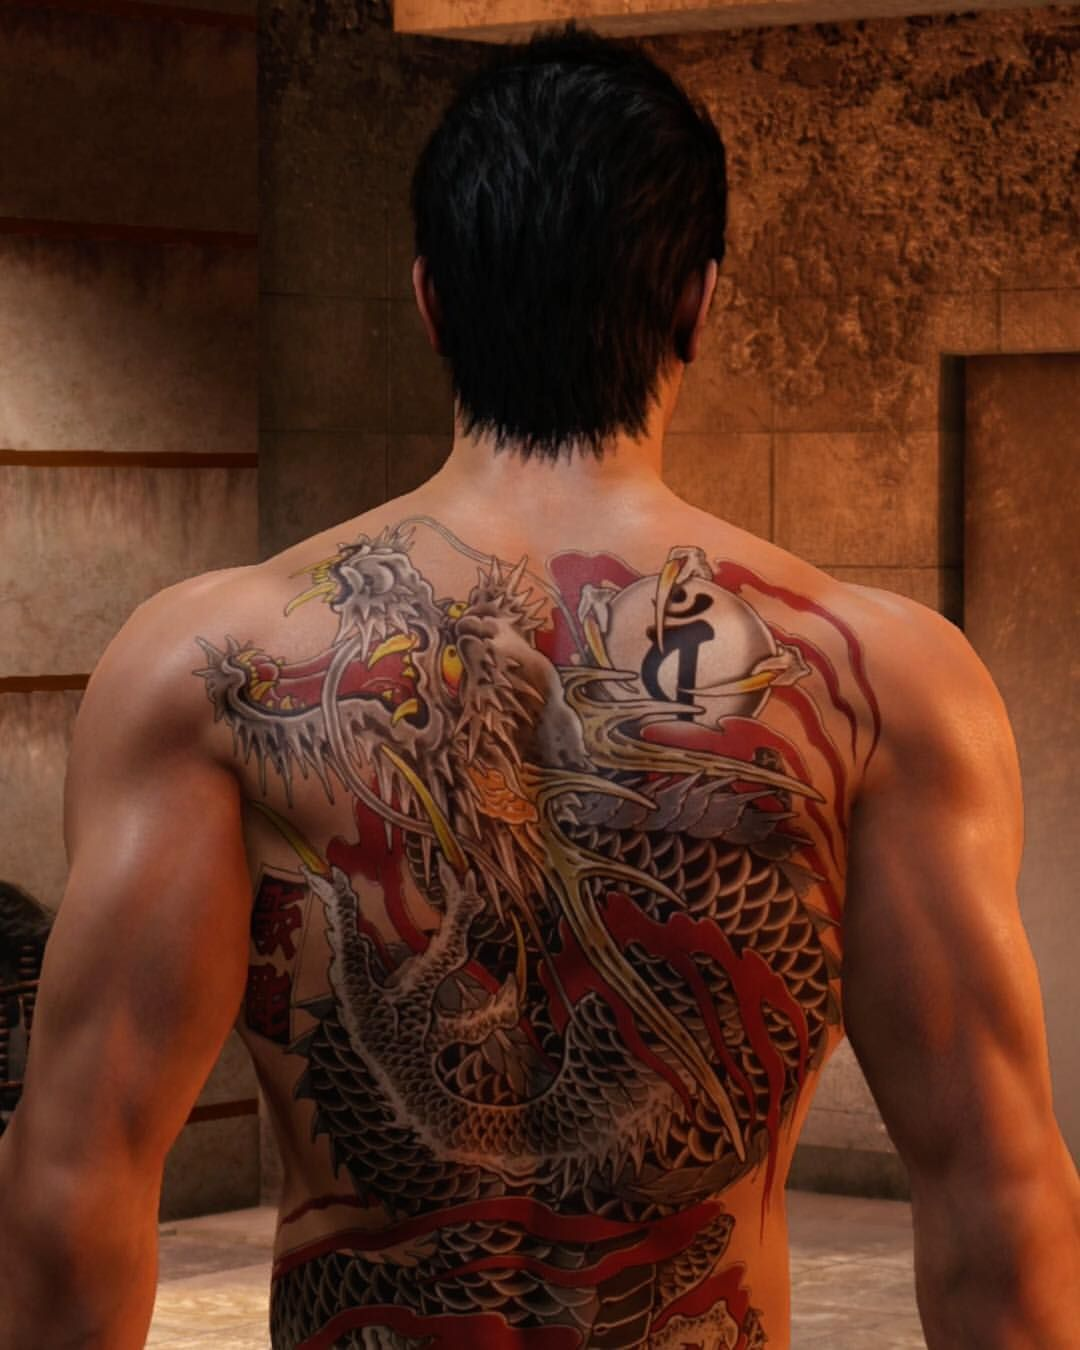 A closer look at the intricacies of Kiryu's tattoos